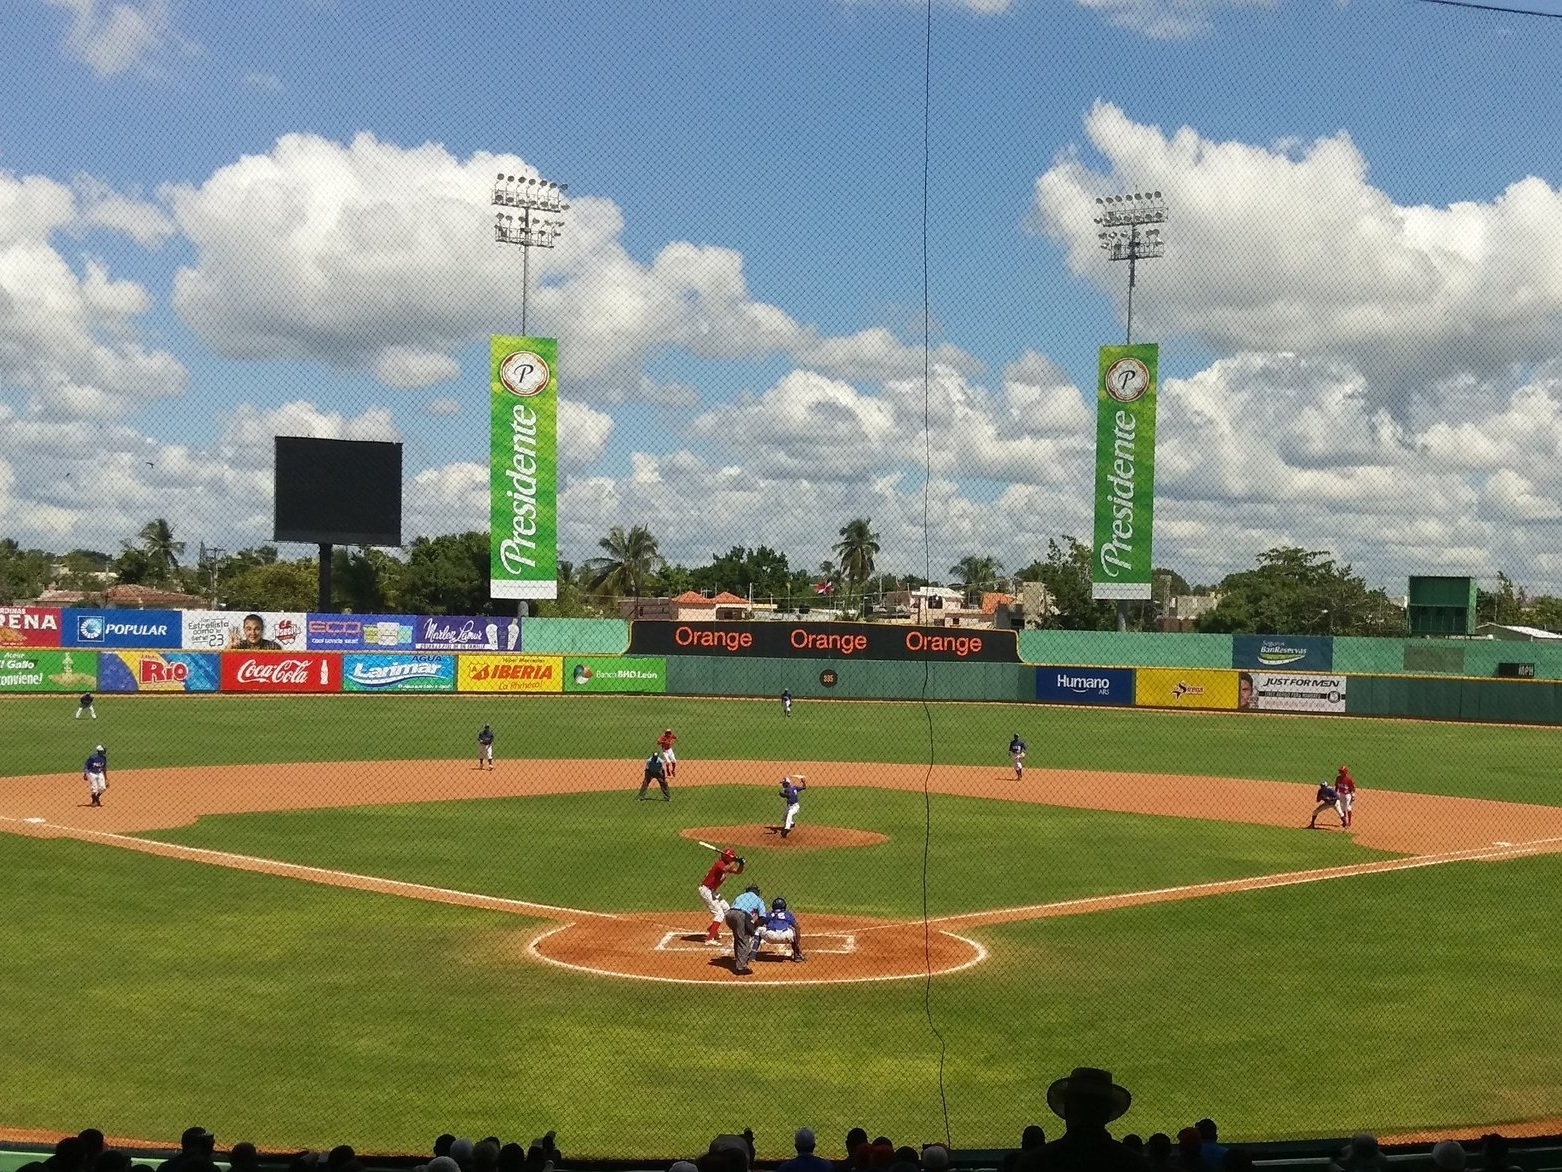 Professional Dominican stadiums are comparable to AAA ballparks in the U.S.